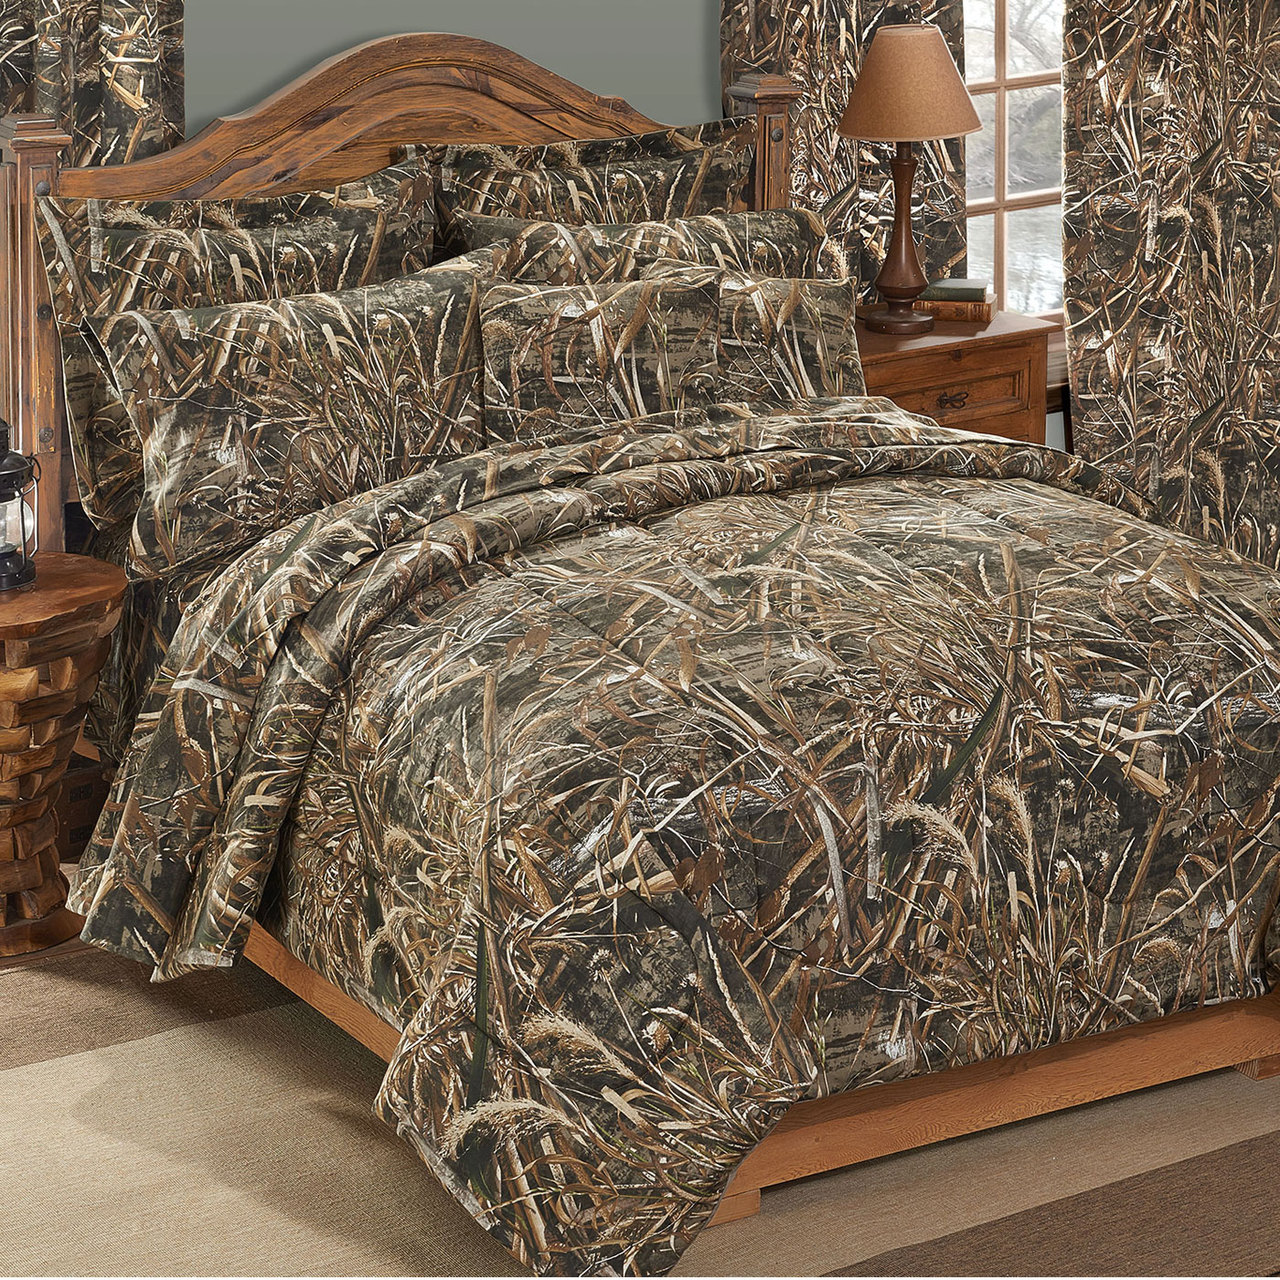 camo bedroom set.  Realtree Max 5 Camo Comforter Sets Free Shipping New Bedding